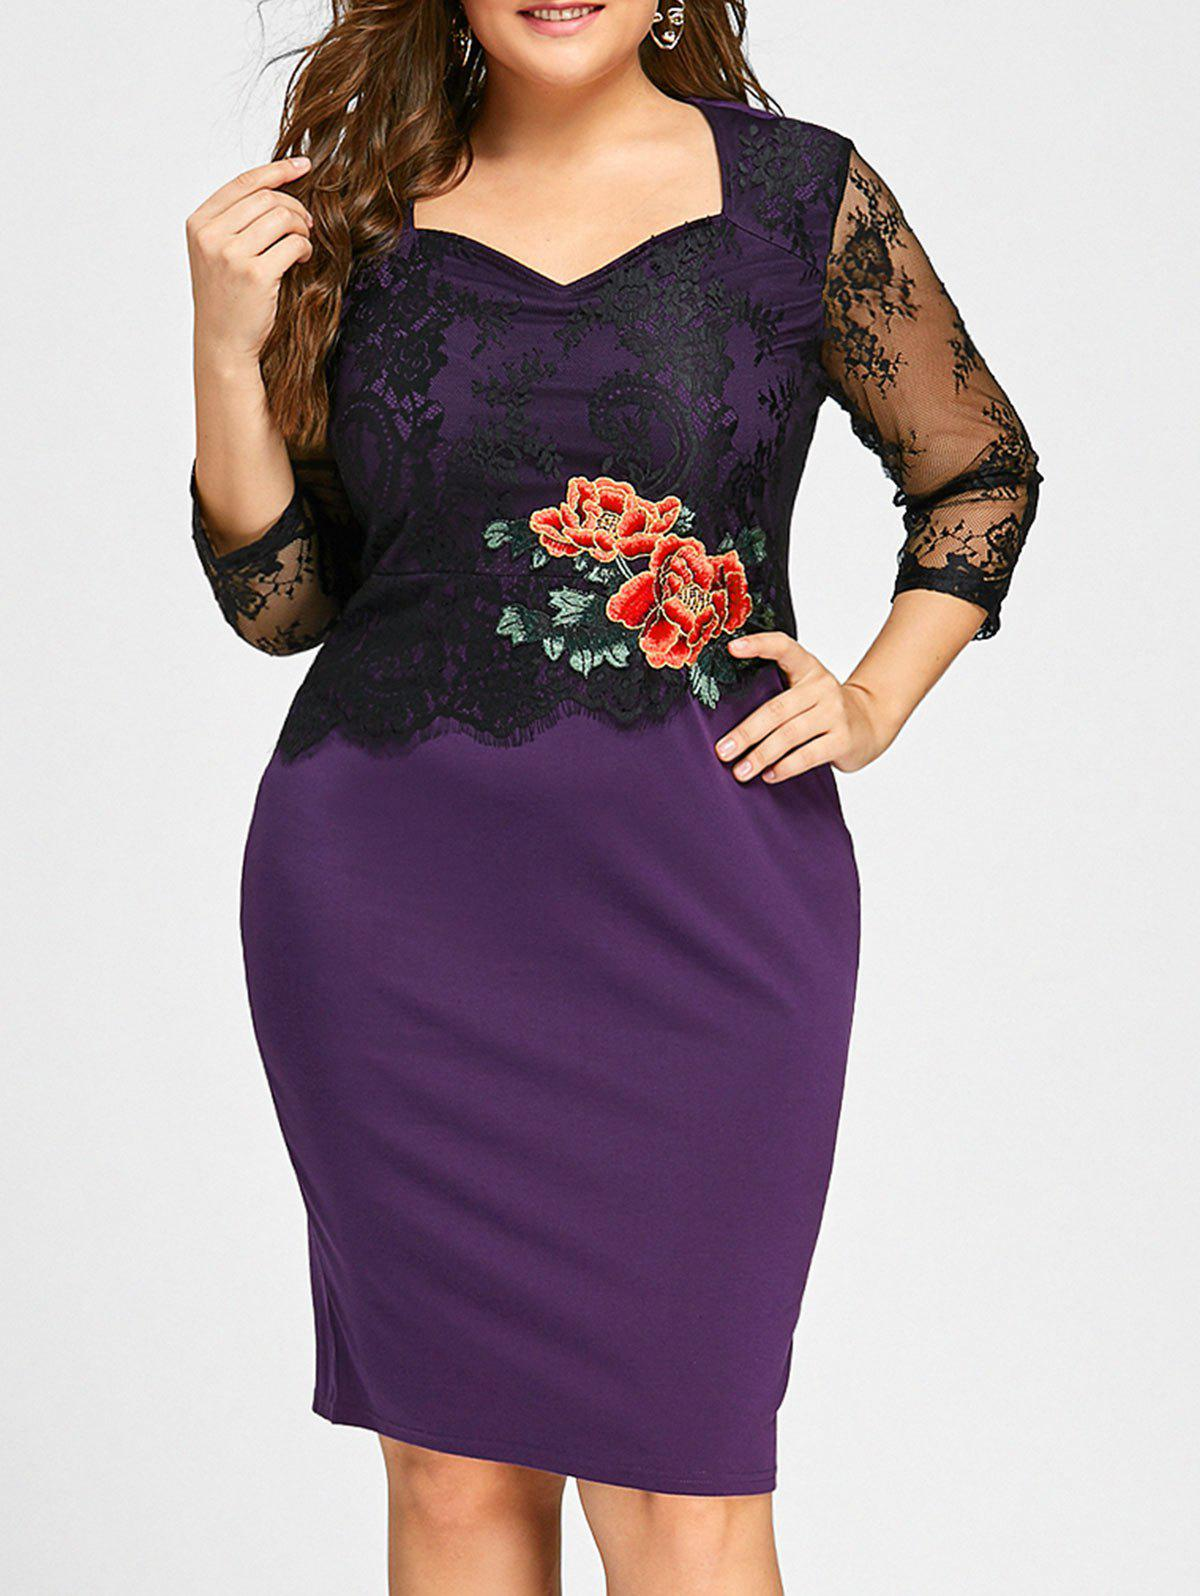 Plus Size Floral Applique Lace Panel Bodycon DressWOMEN<br><br>Size: 5XL; Color: PURPLE; Style: Casual; Material: Cotton,Polyester; Silhouette: Bodycon; Dresses Length: Knee-Length; Neckline: Sweetheart Neck; Sleeve Length: 3/4 Length Sleeves; Embellishment: Appliques; Pattern Type: Floral; With Belt: No; Season: Fall,Spring; Weight: 0.3900kg; Package Contents: 1 x Dress;